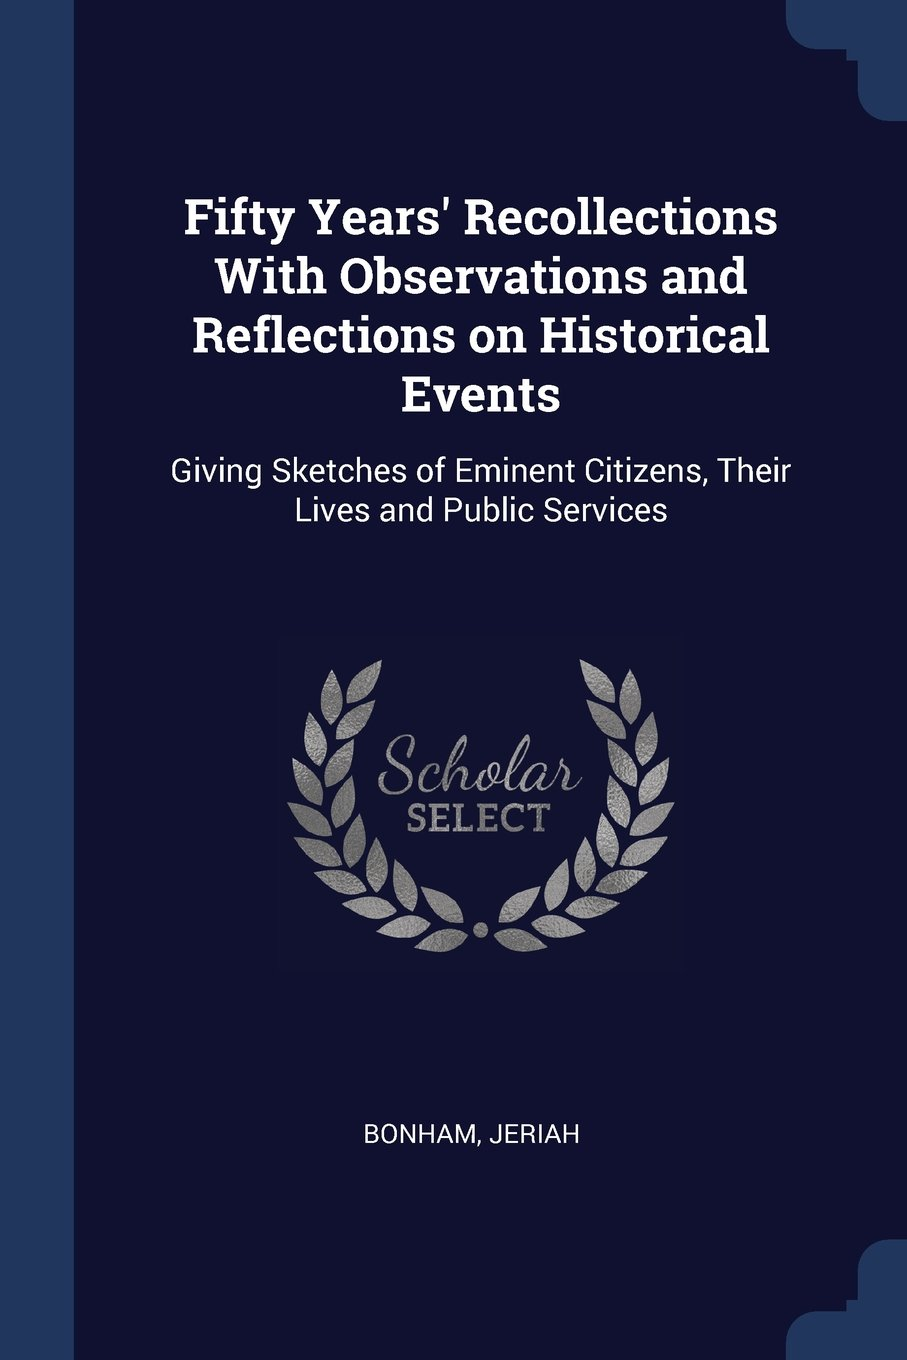 Fifty Years' Recollections With Observations and Reflections on Historical Events: Giving Sketches of Eminent Citizens, Their Lives and Public Services PDF